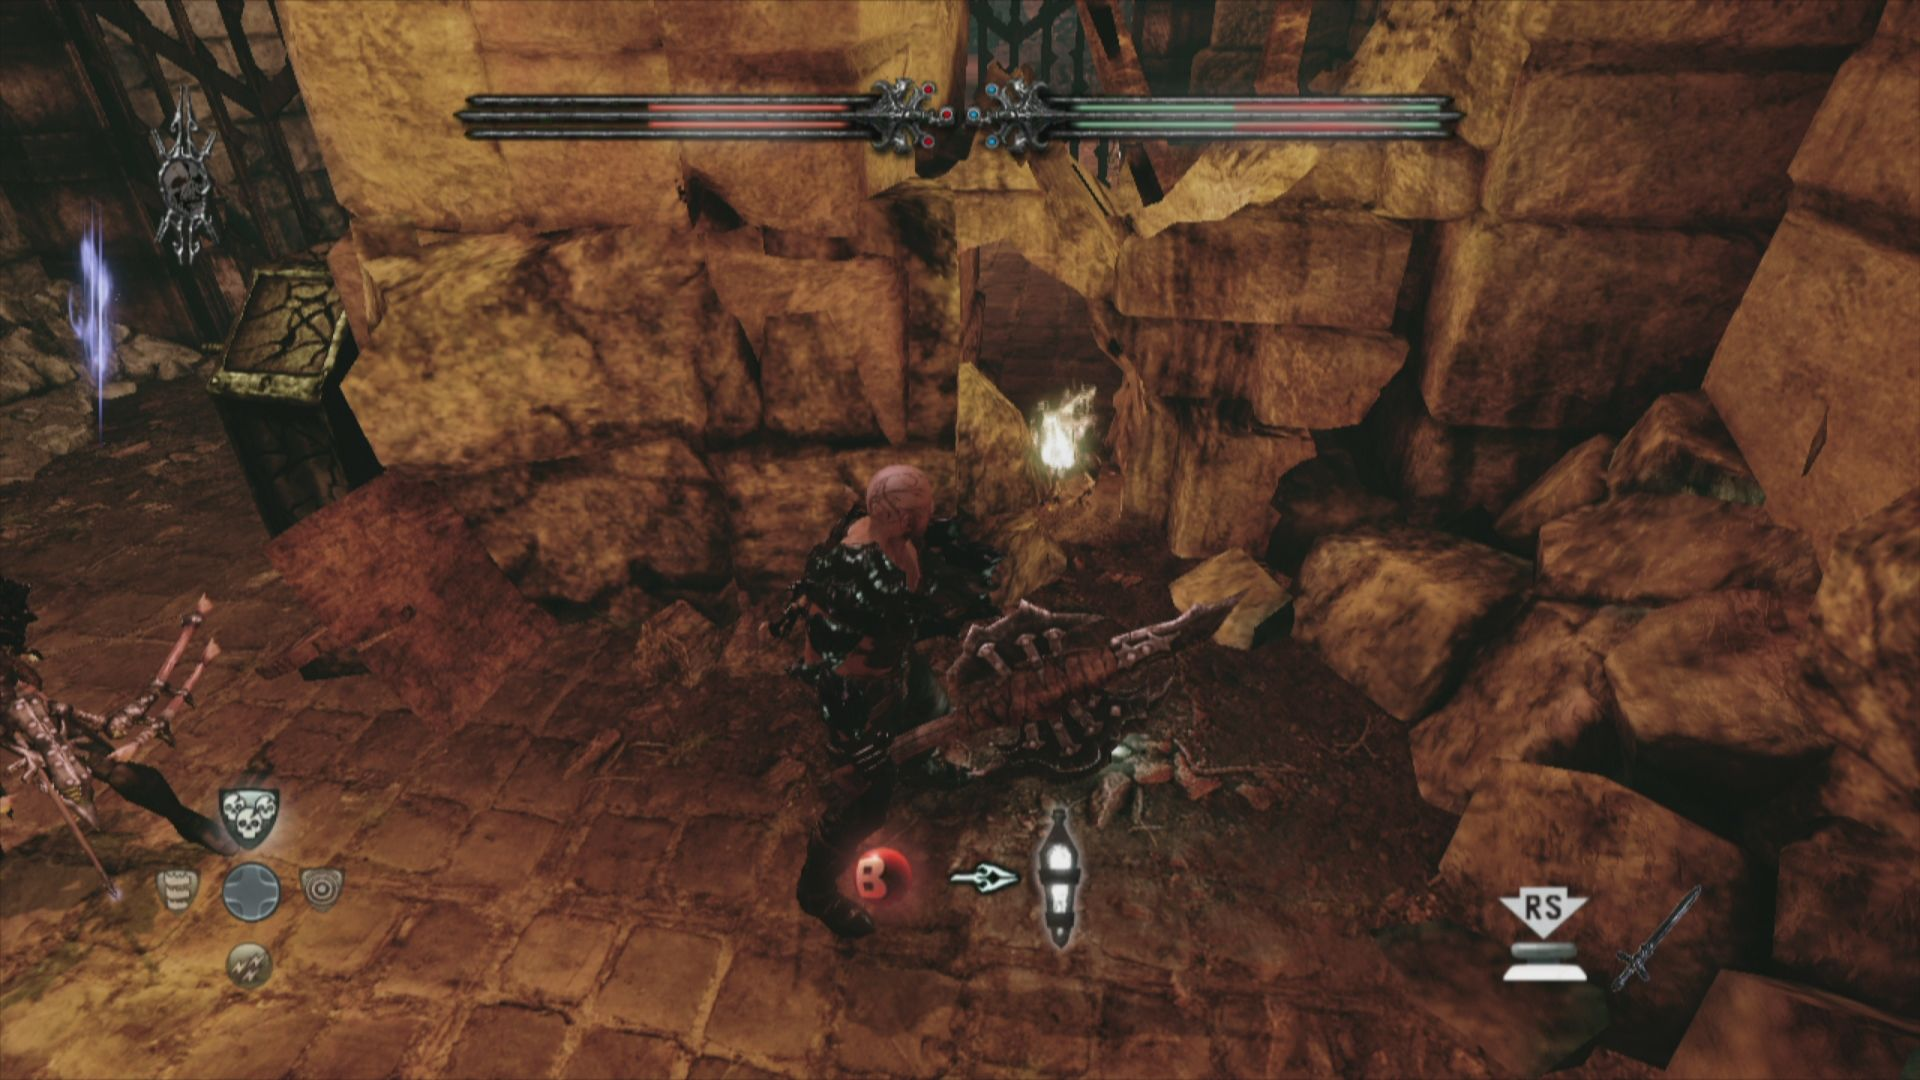 Hunted: The Demon's Forge Xbox 360 Resurrection vial